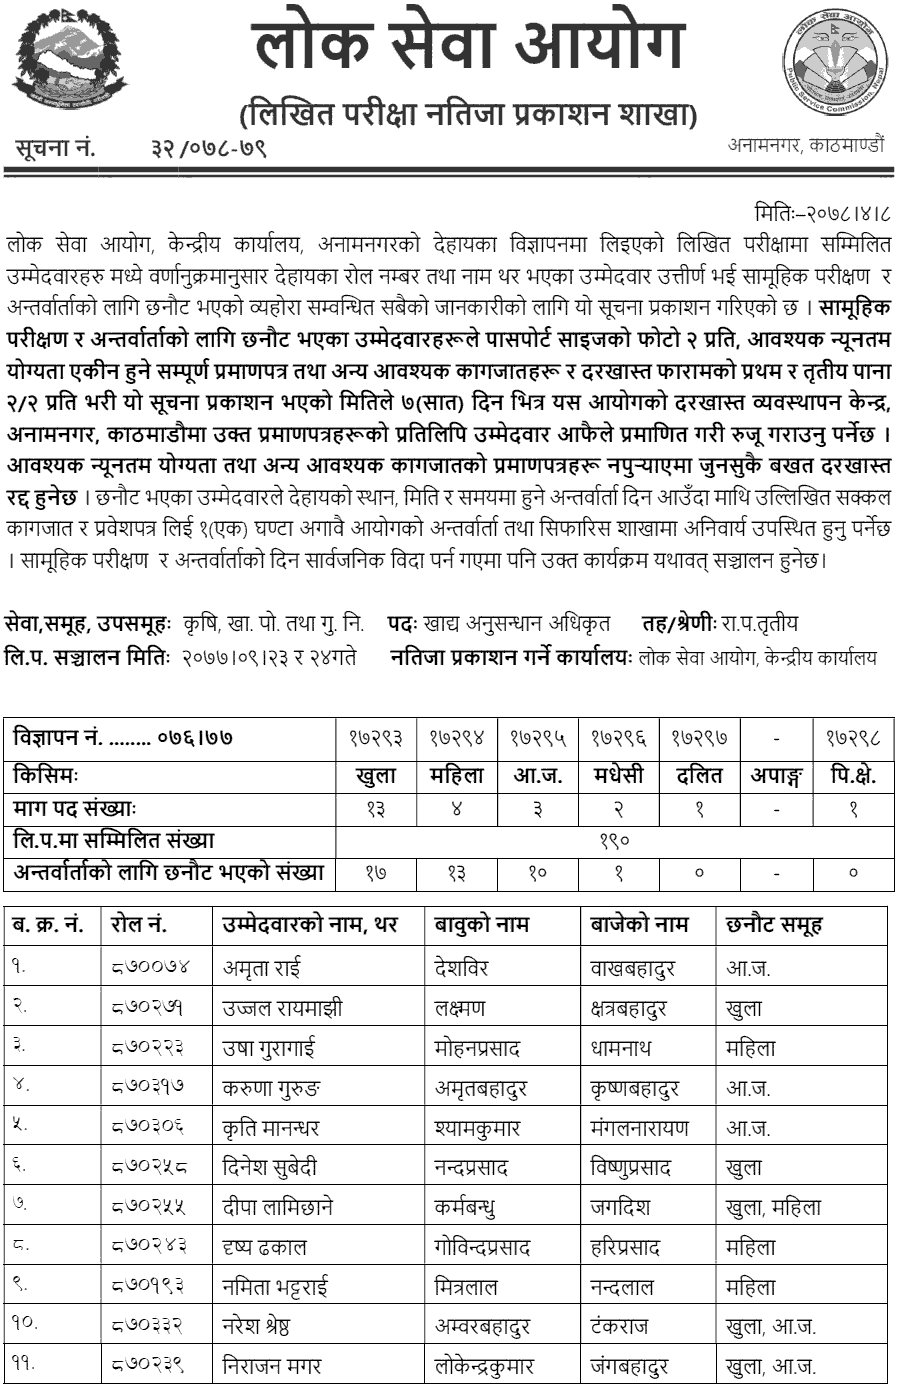 Lok Sewa Aayog Published Written Exam Result of Food Research Officer